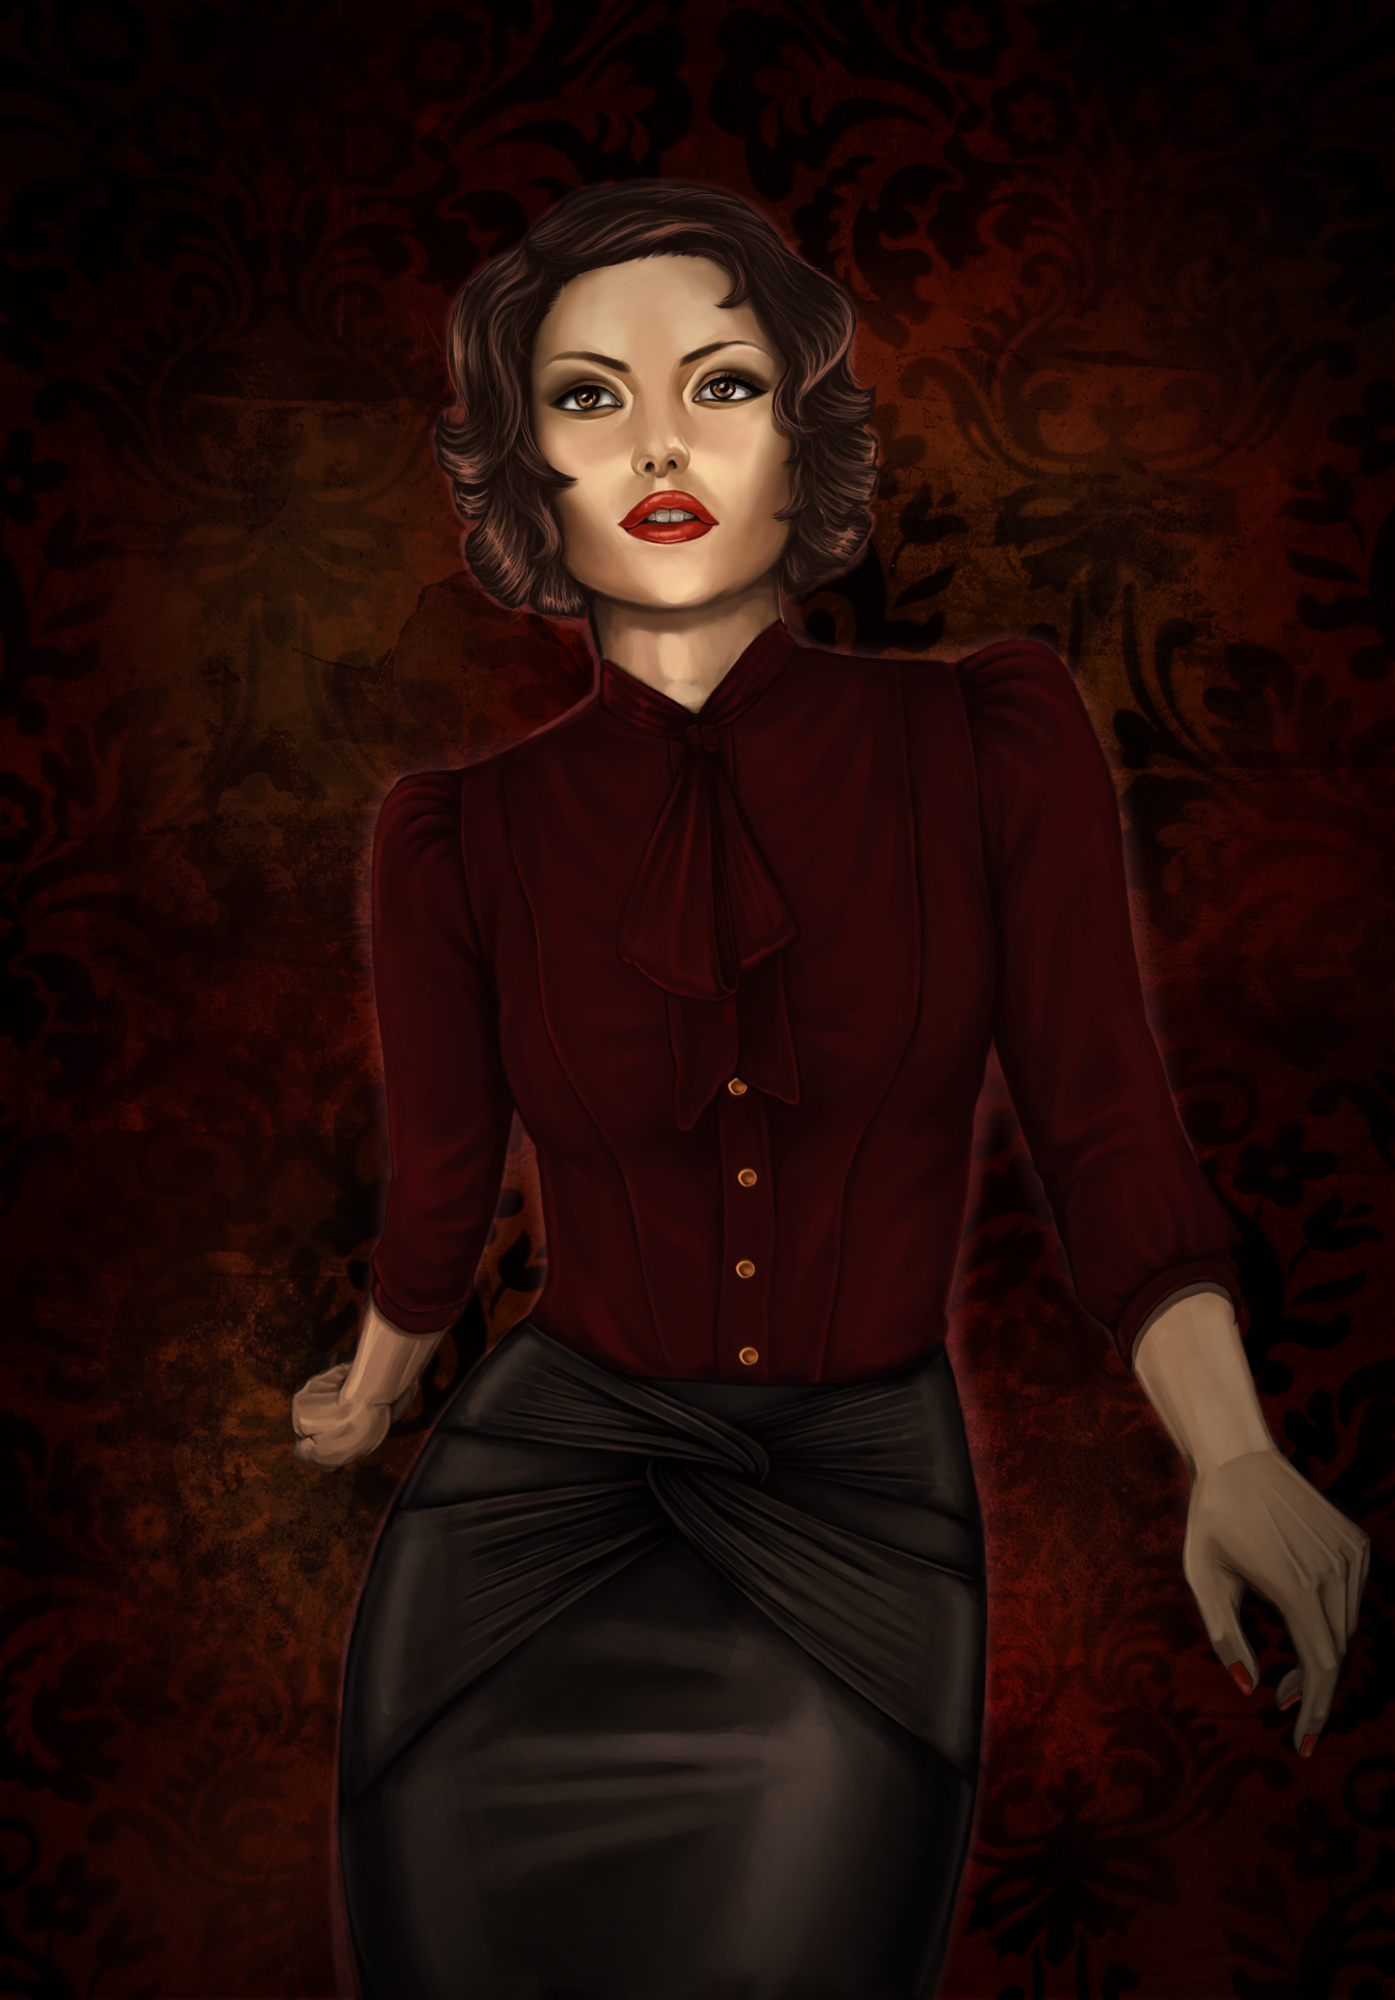 Lady in Red by kindnessisacardgame